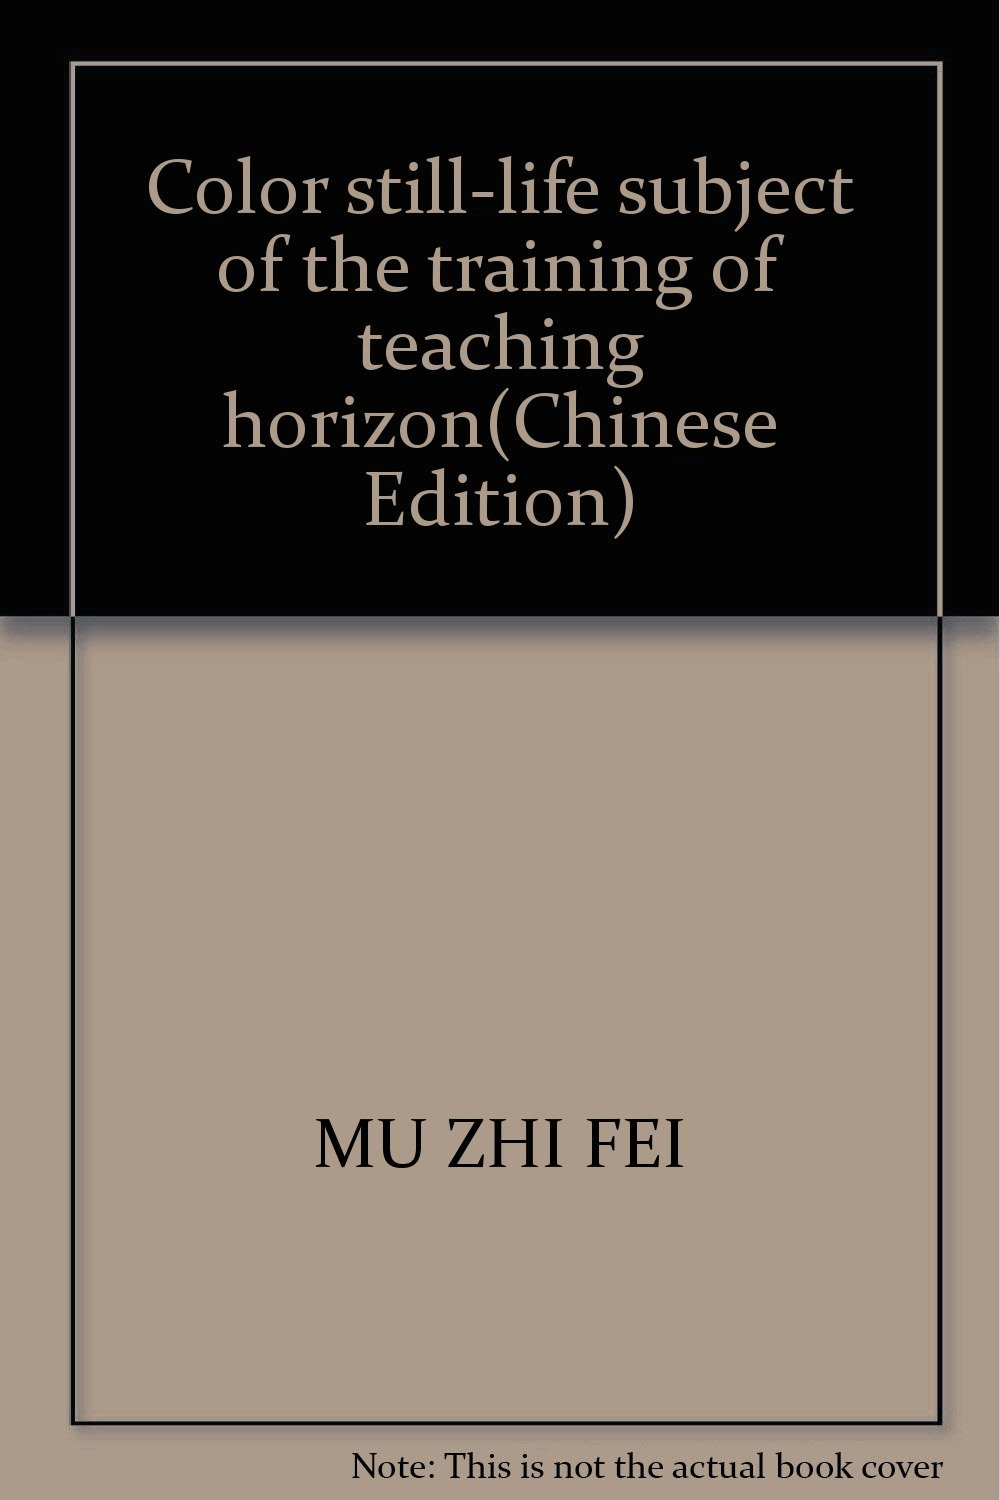 Color still-life subject of the training of teaching horizon(Chinese Edition) pdf